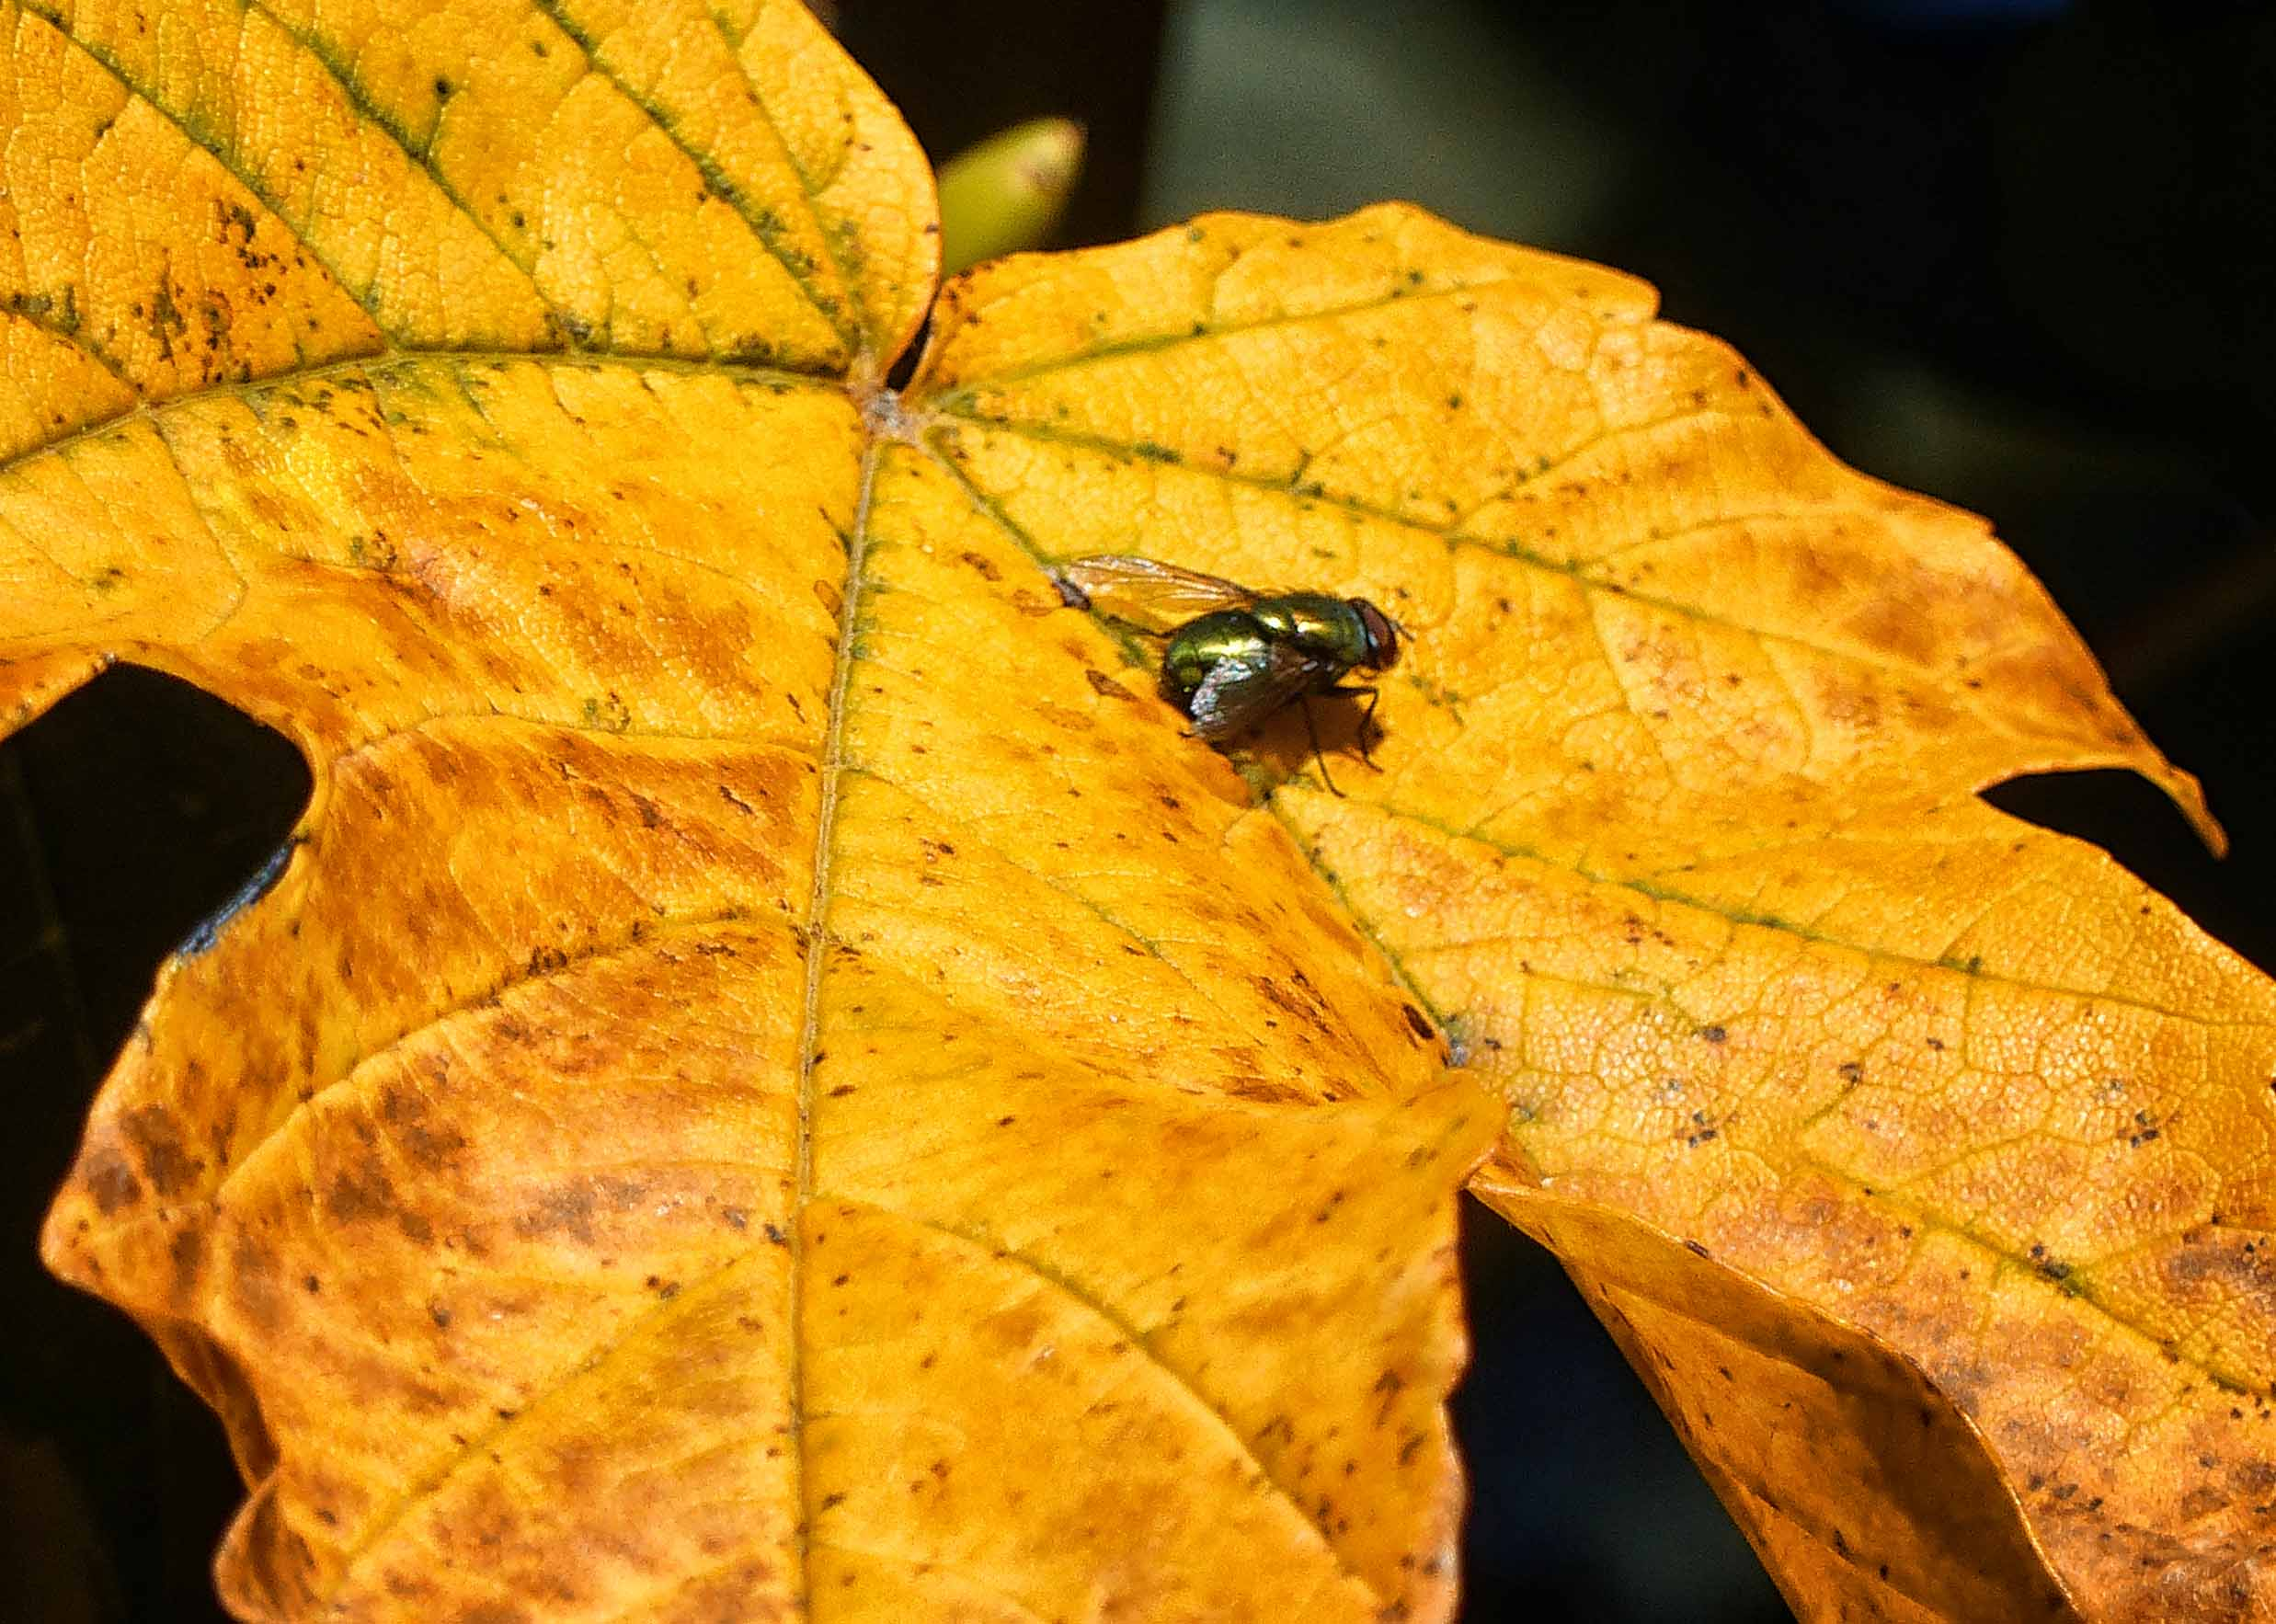 Metallic green fly on a yellow leaf